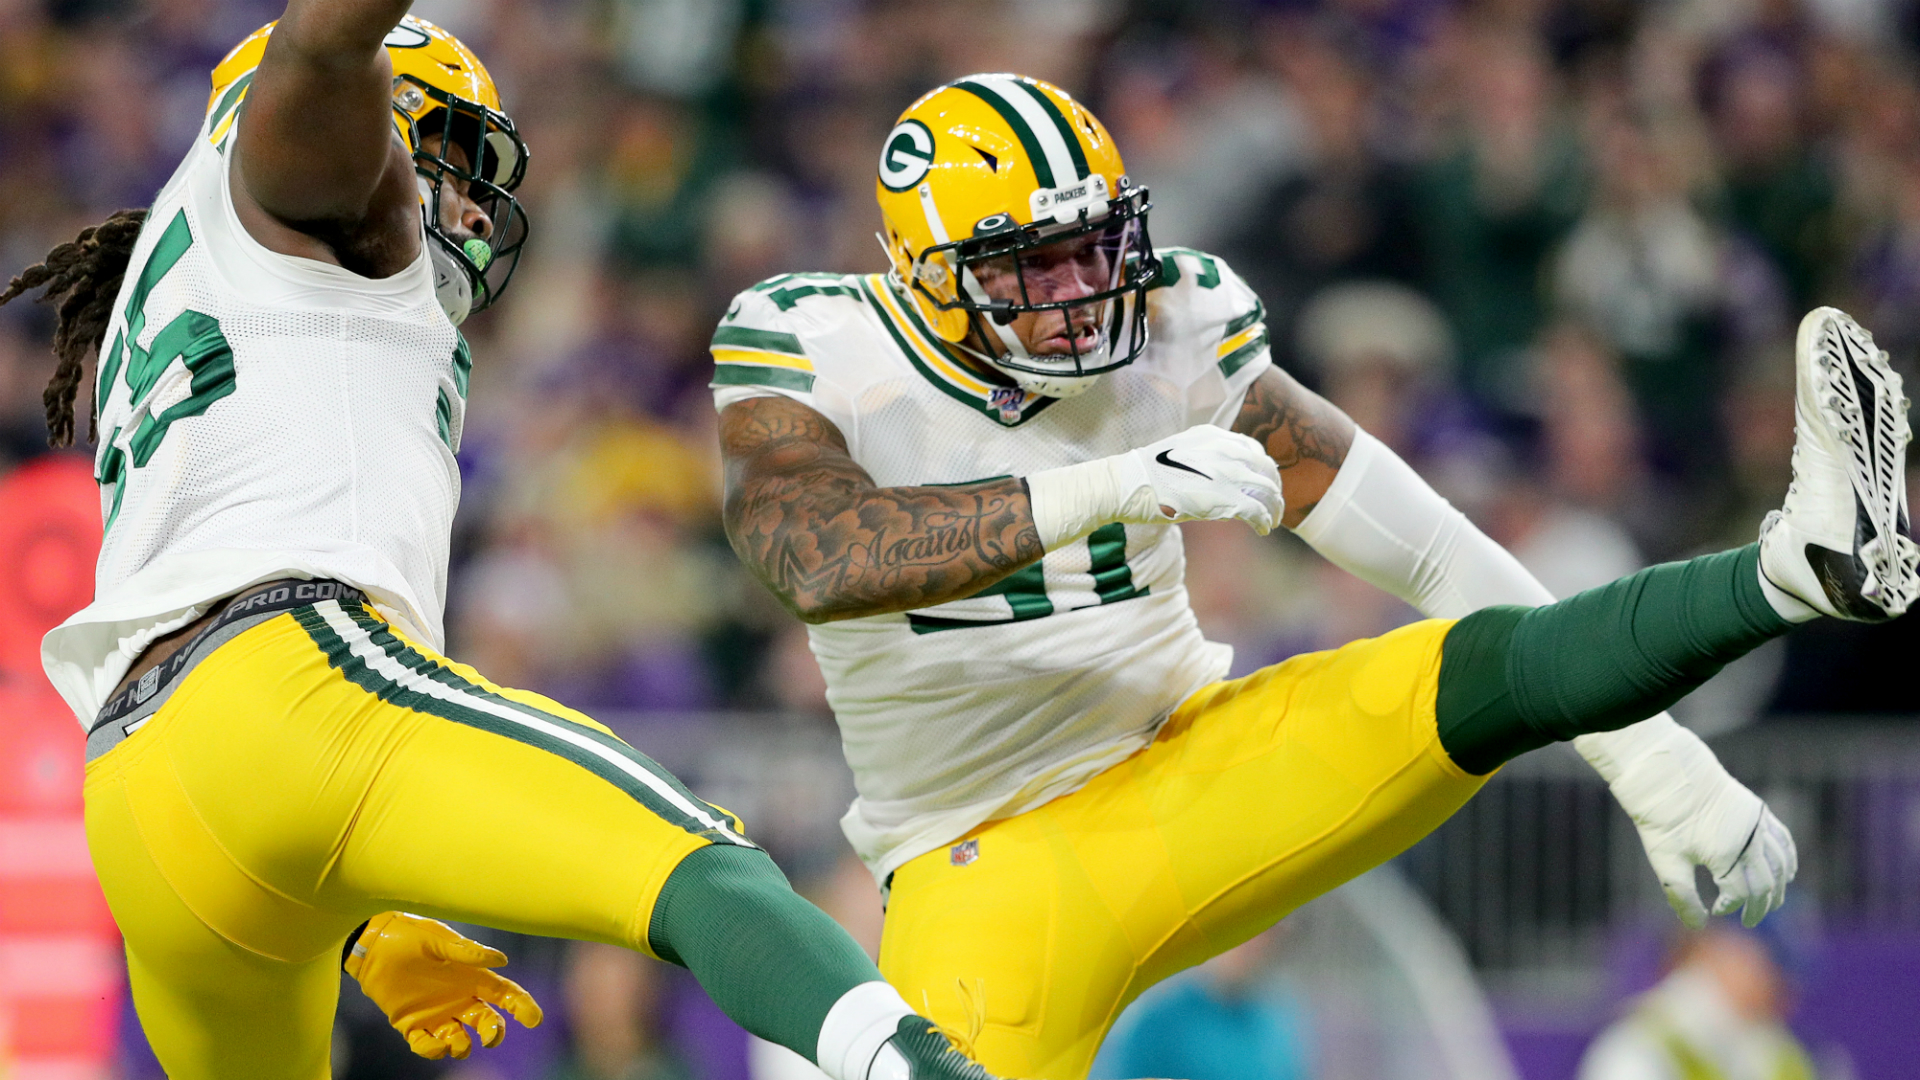 Packers Vs Vikings Final Score Green Bay Clinches Nfc North With Monday Night Win Sporting News